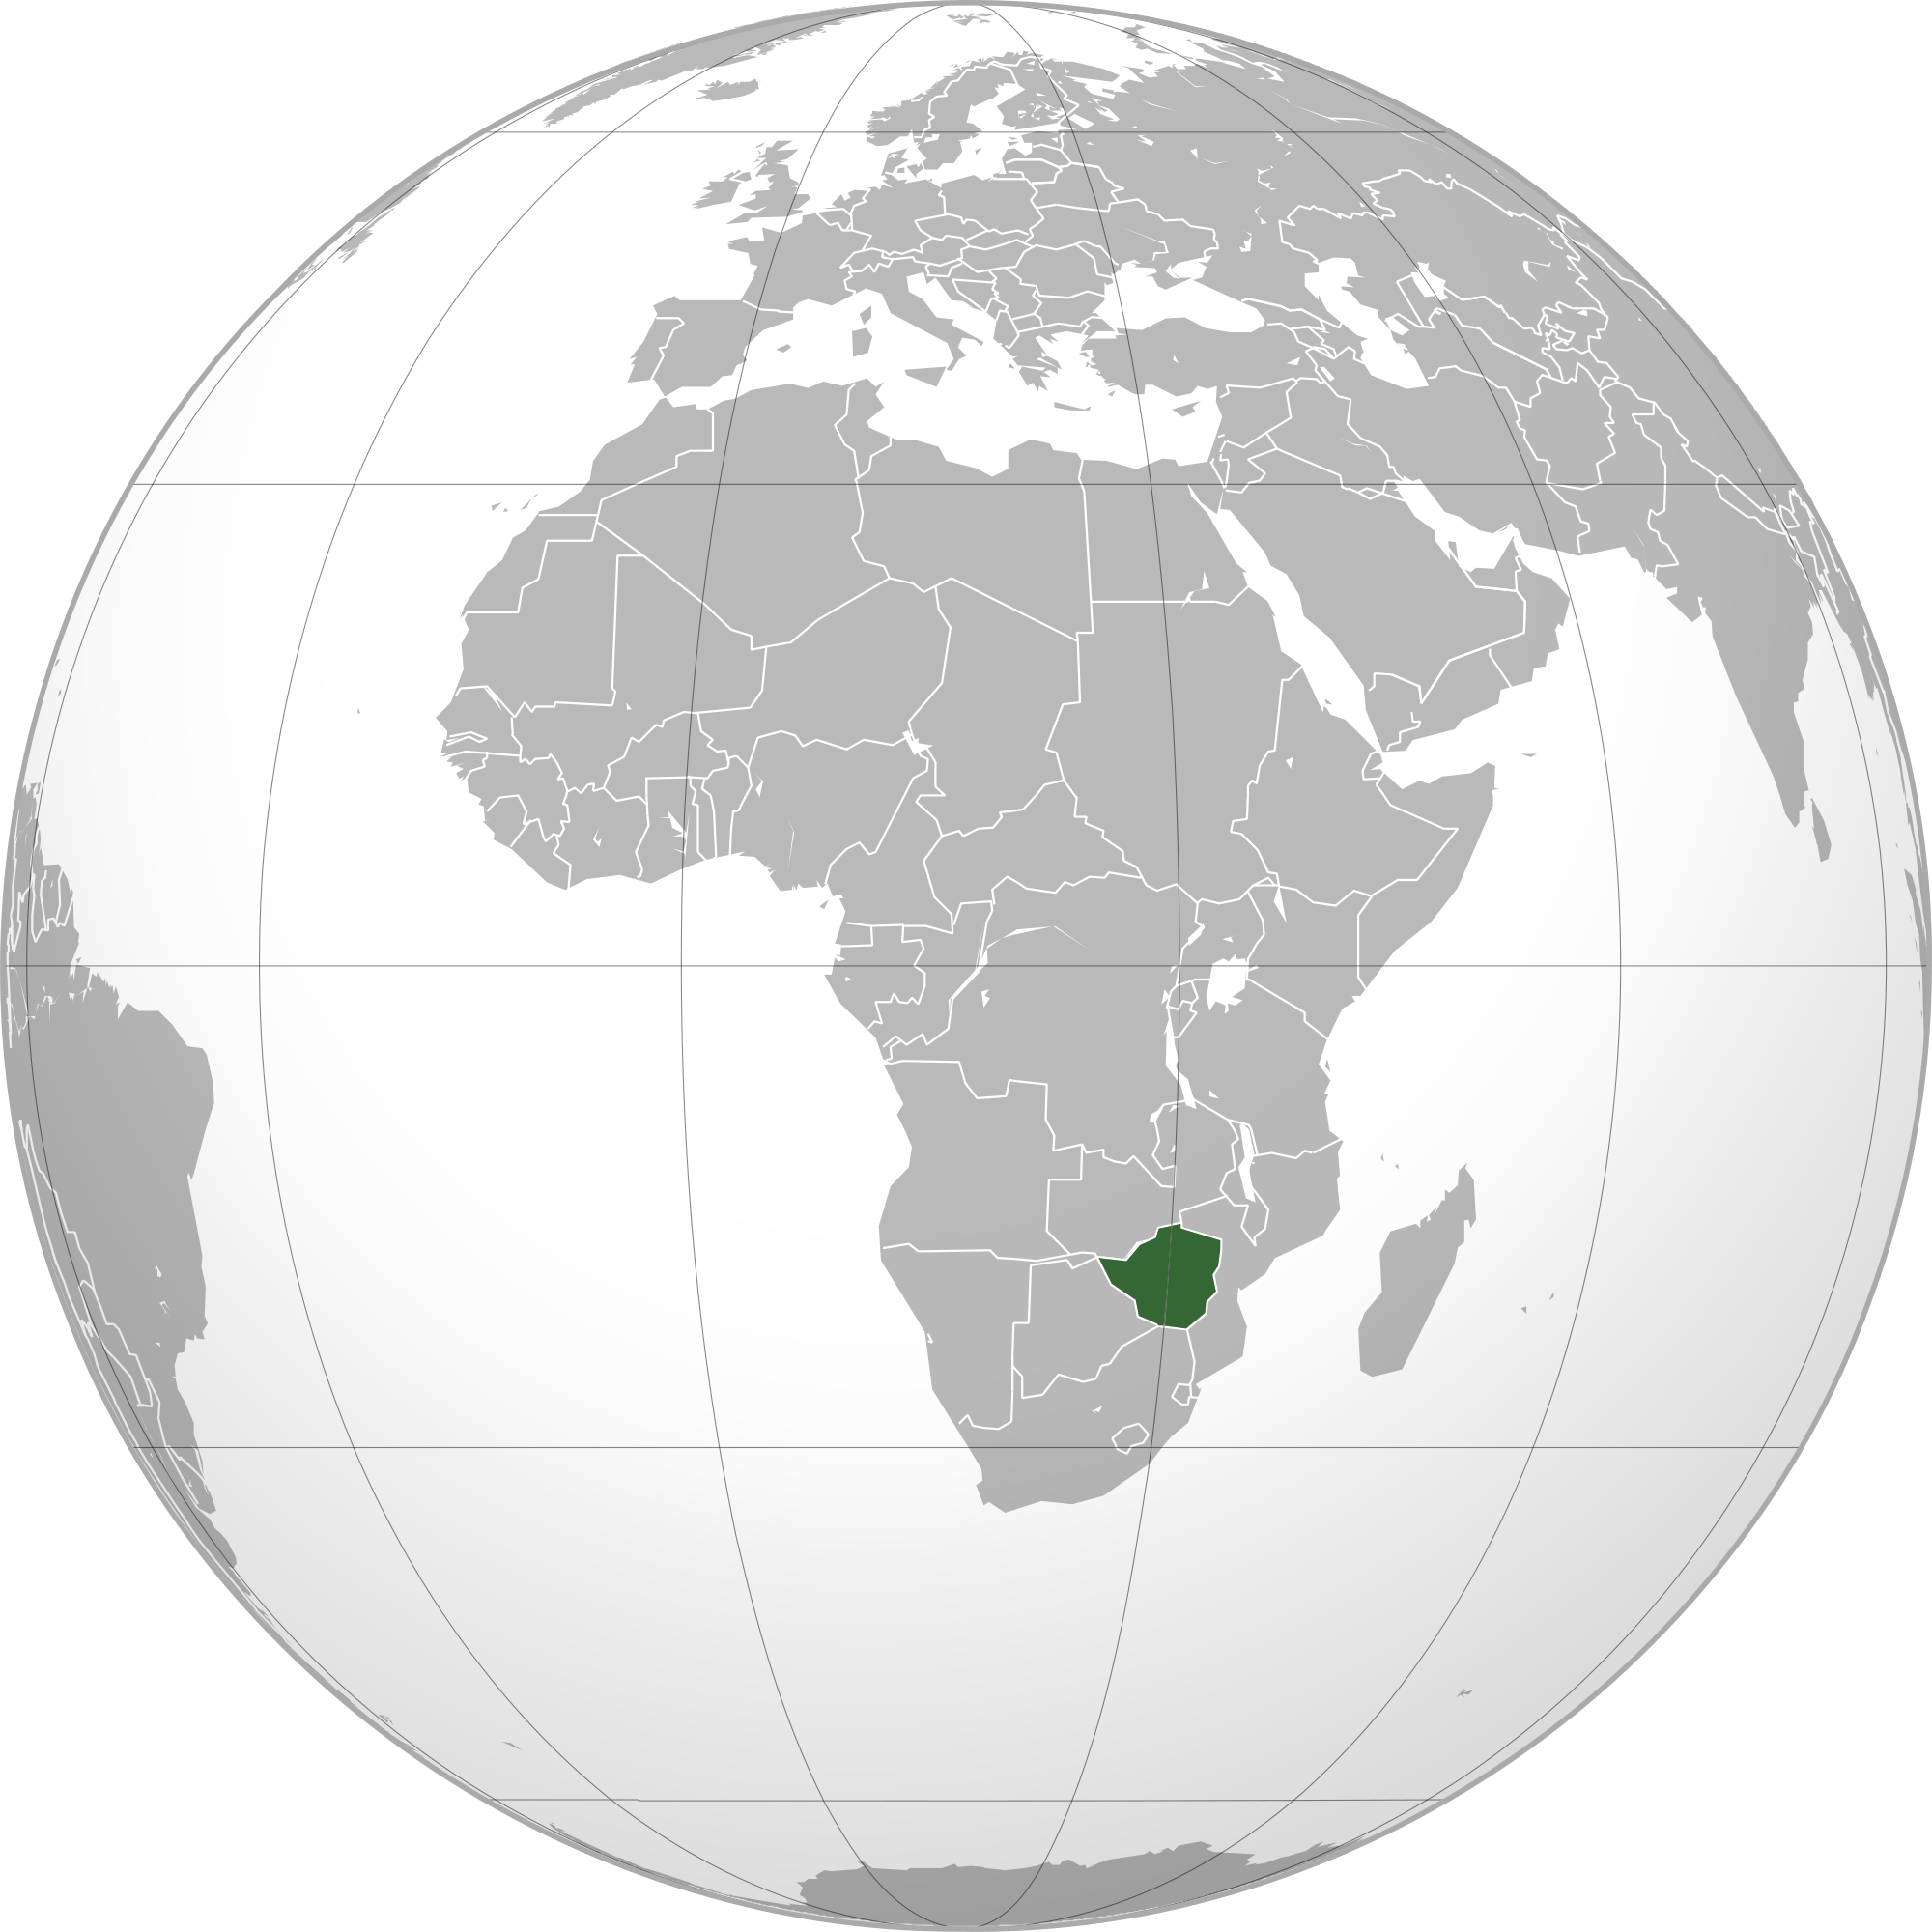 Location of the Zimbabwe in the World Map